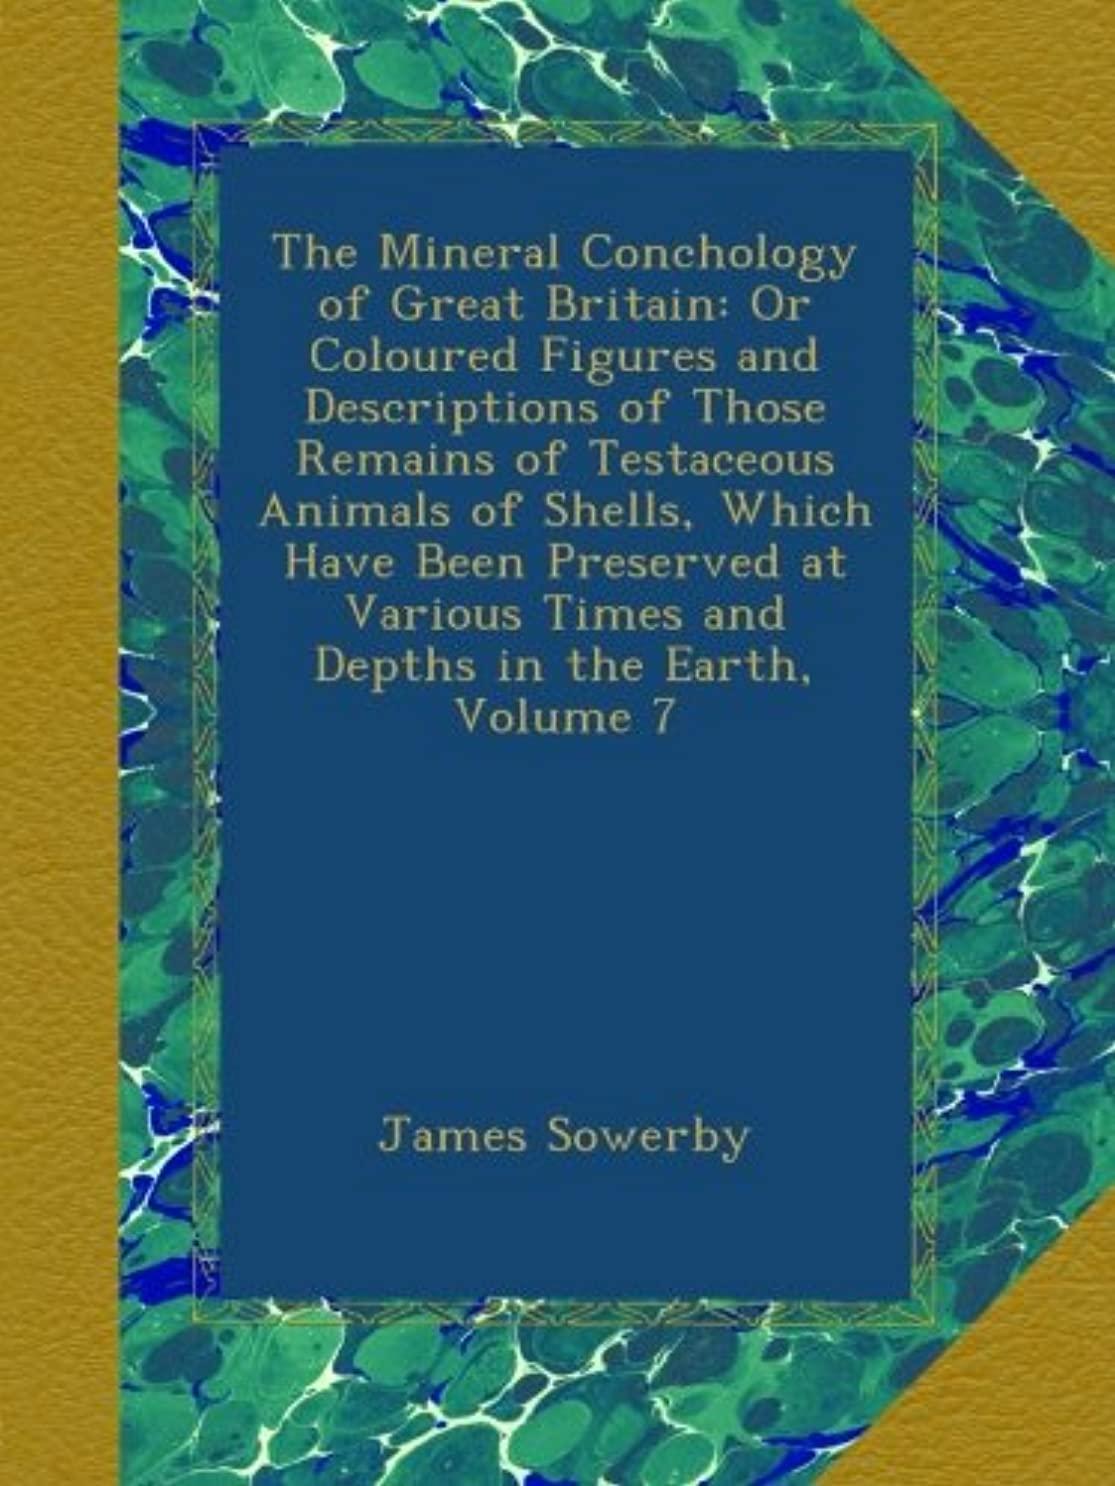 一般的な正しくメイドThe Mineral Conchology of Great Britain: Or Coloured Figures and Descriptions of Those Remains of Testaceous Animals of Shells, Which Have Been Preserved at Various Times and Depths in the Earth, Volume 7